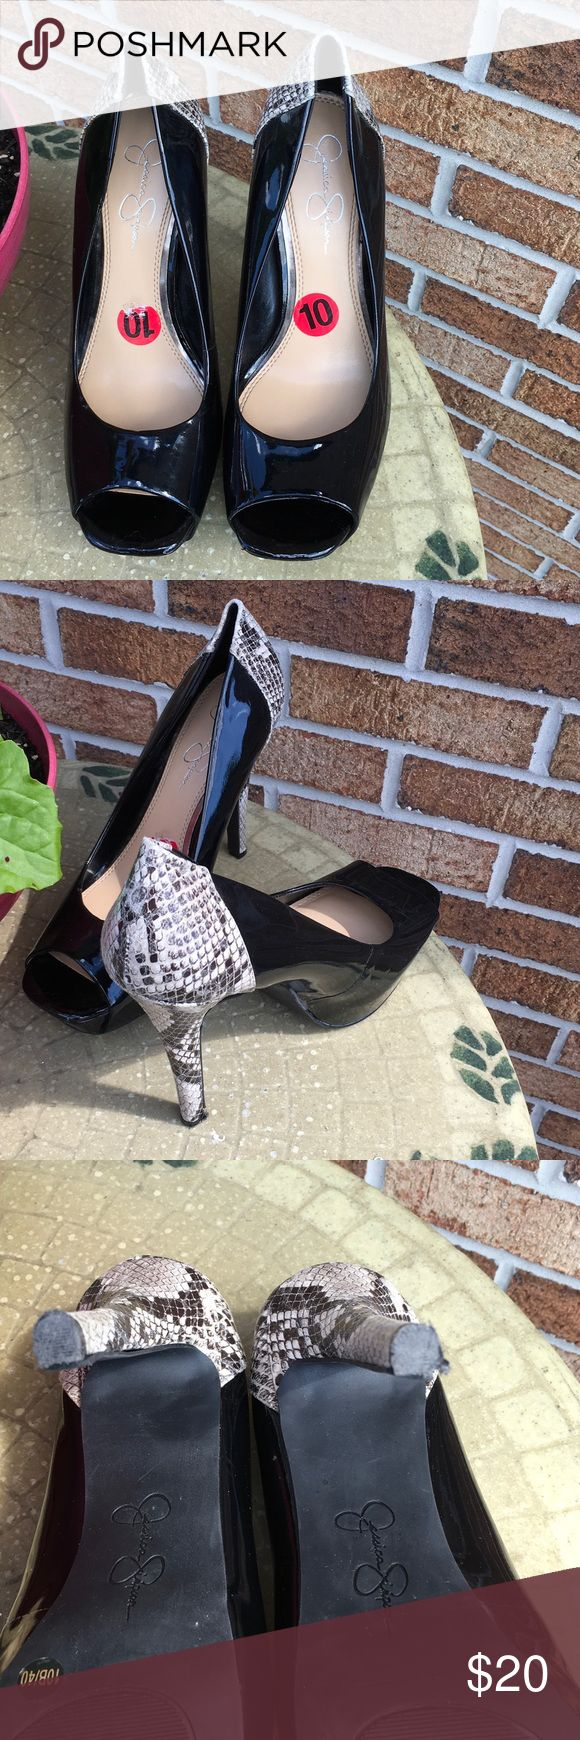 """Jessica Simpson Black Patent snakeskin Heels 10M Jessica Simpson black patent shoes with 5"""" snakeskin print heels.  Light wear with damage to soles shown in last 2 pictures.  Small sharp stones were stuck on soles resulting in the shown bottom of shoes.  Offers always considered. Jessica Simpson Shoes Heels"""